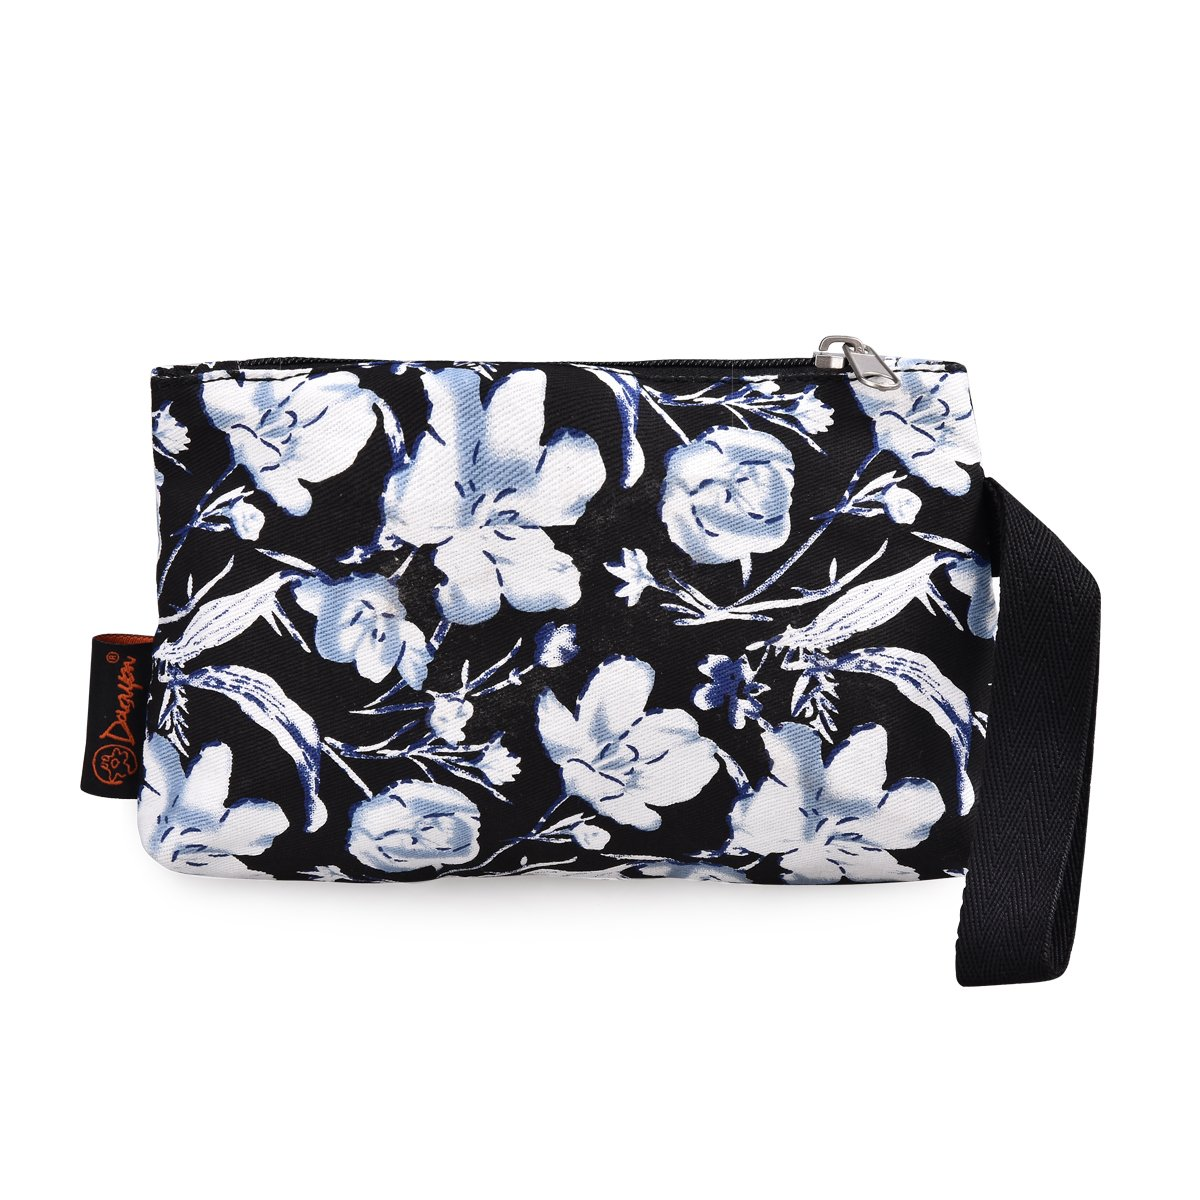 Flower 1 Pc DGY Black Canvas Floral Printed Backpack 3 Pieces School Rucksack for Teen Girls